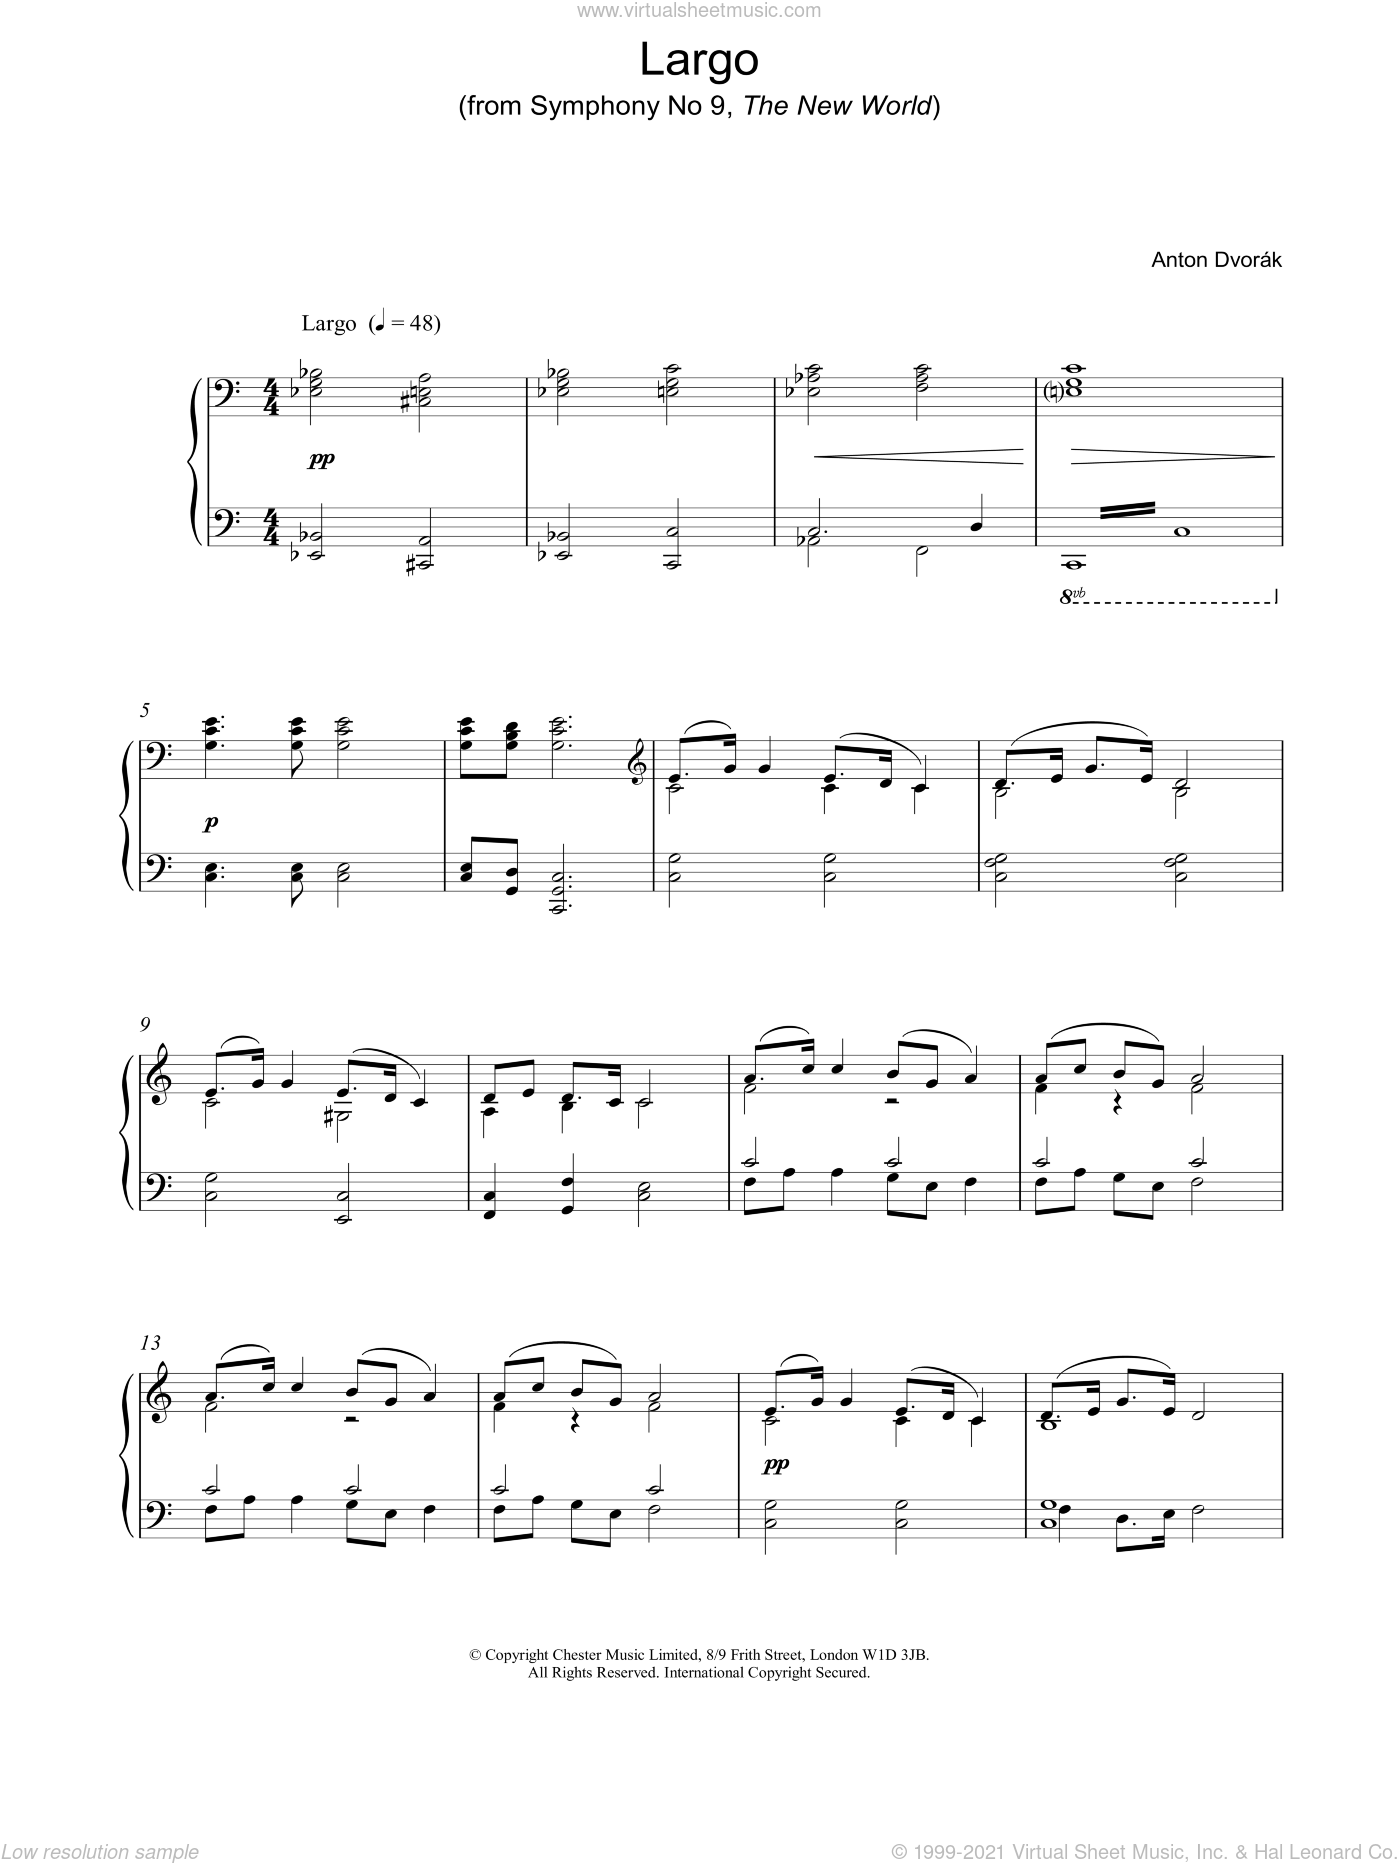 Largo sheet music for piano solo by Antonin Dvorak